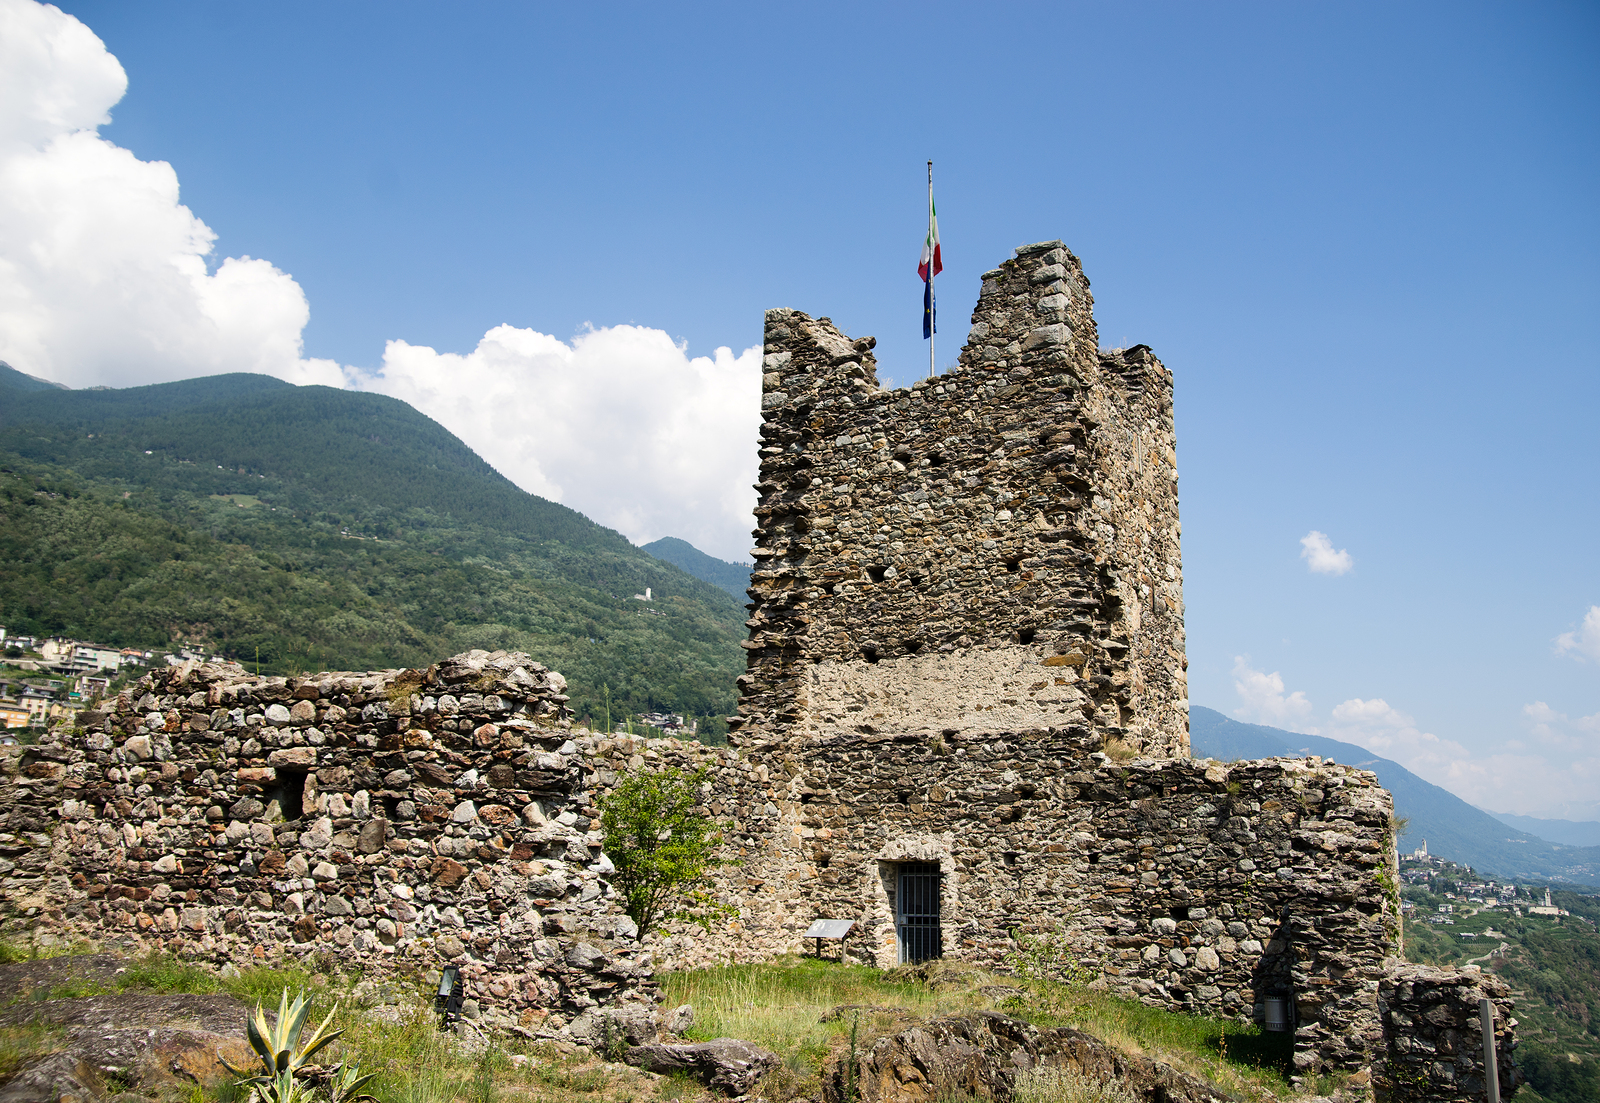 Medeival attraction in italy of old castle ruins